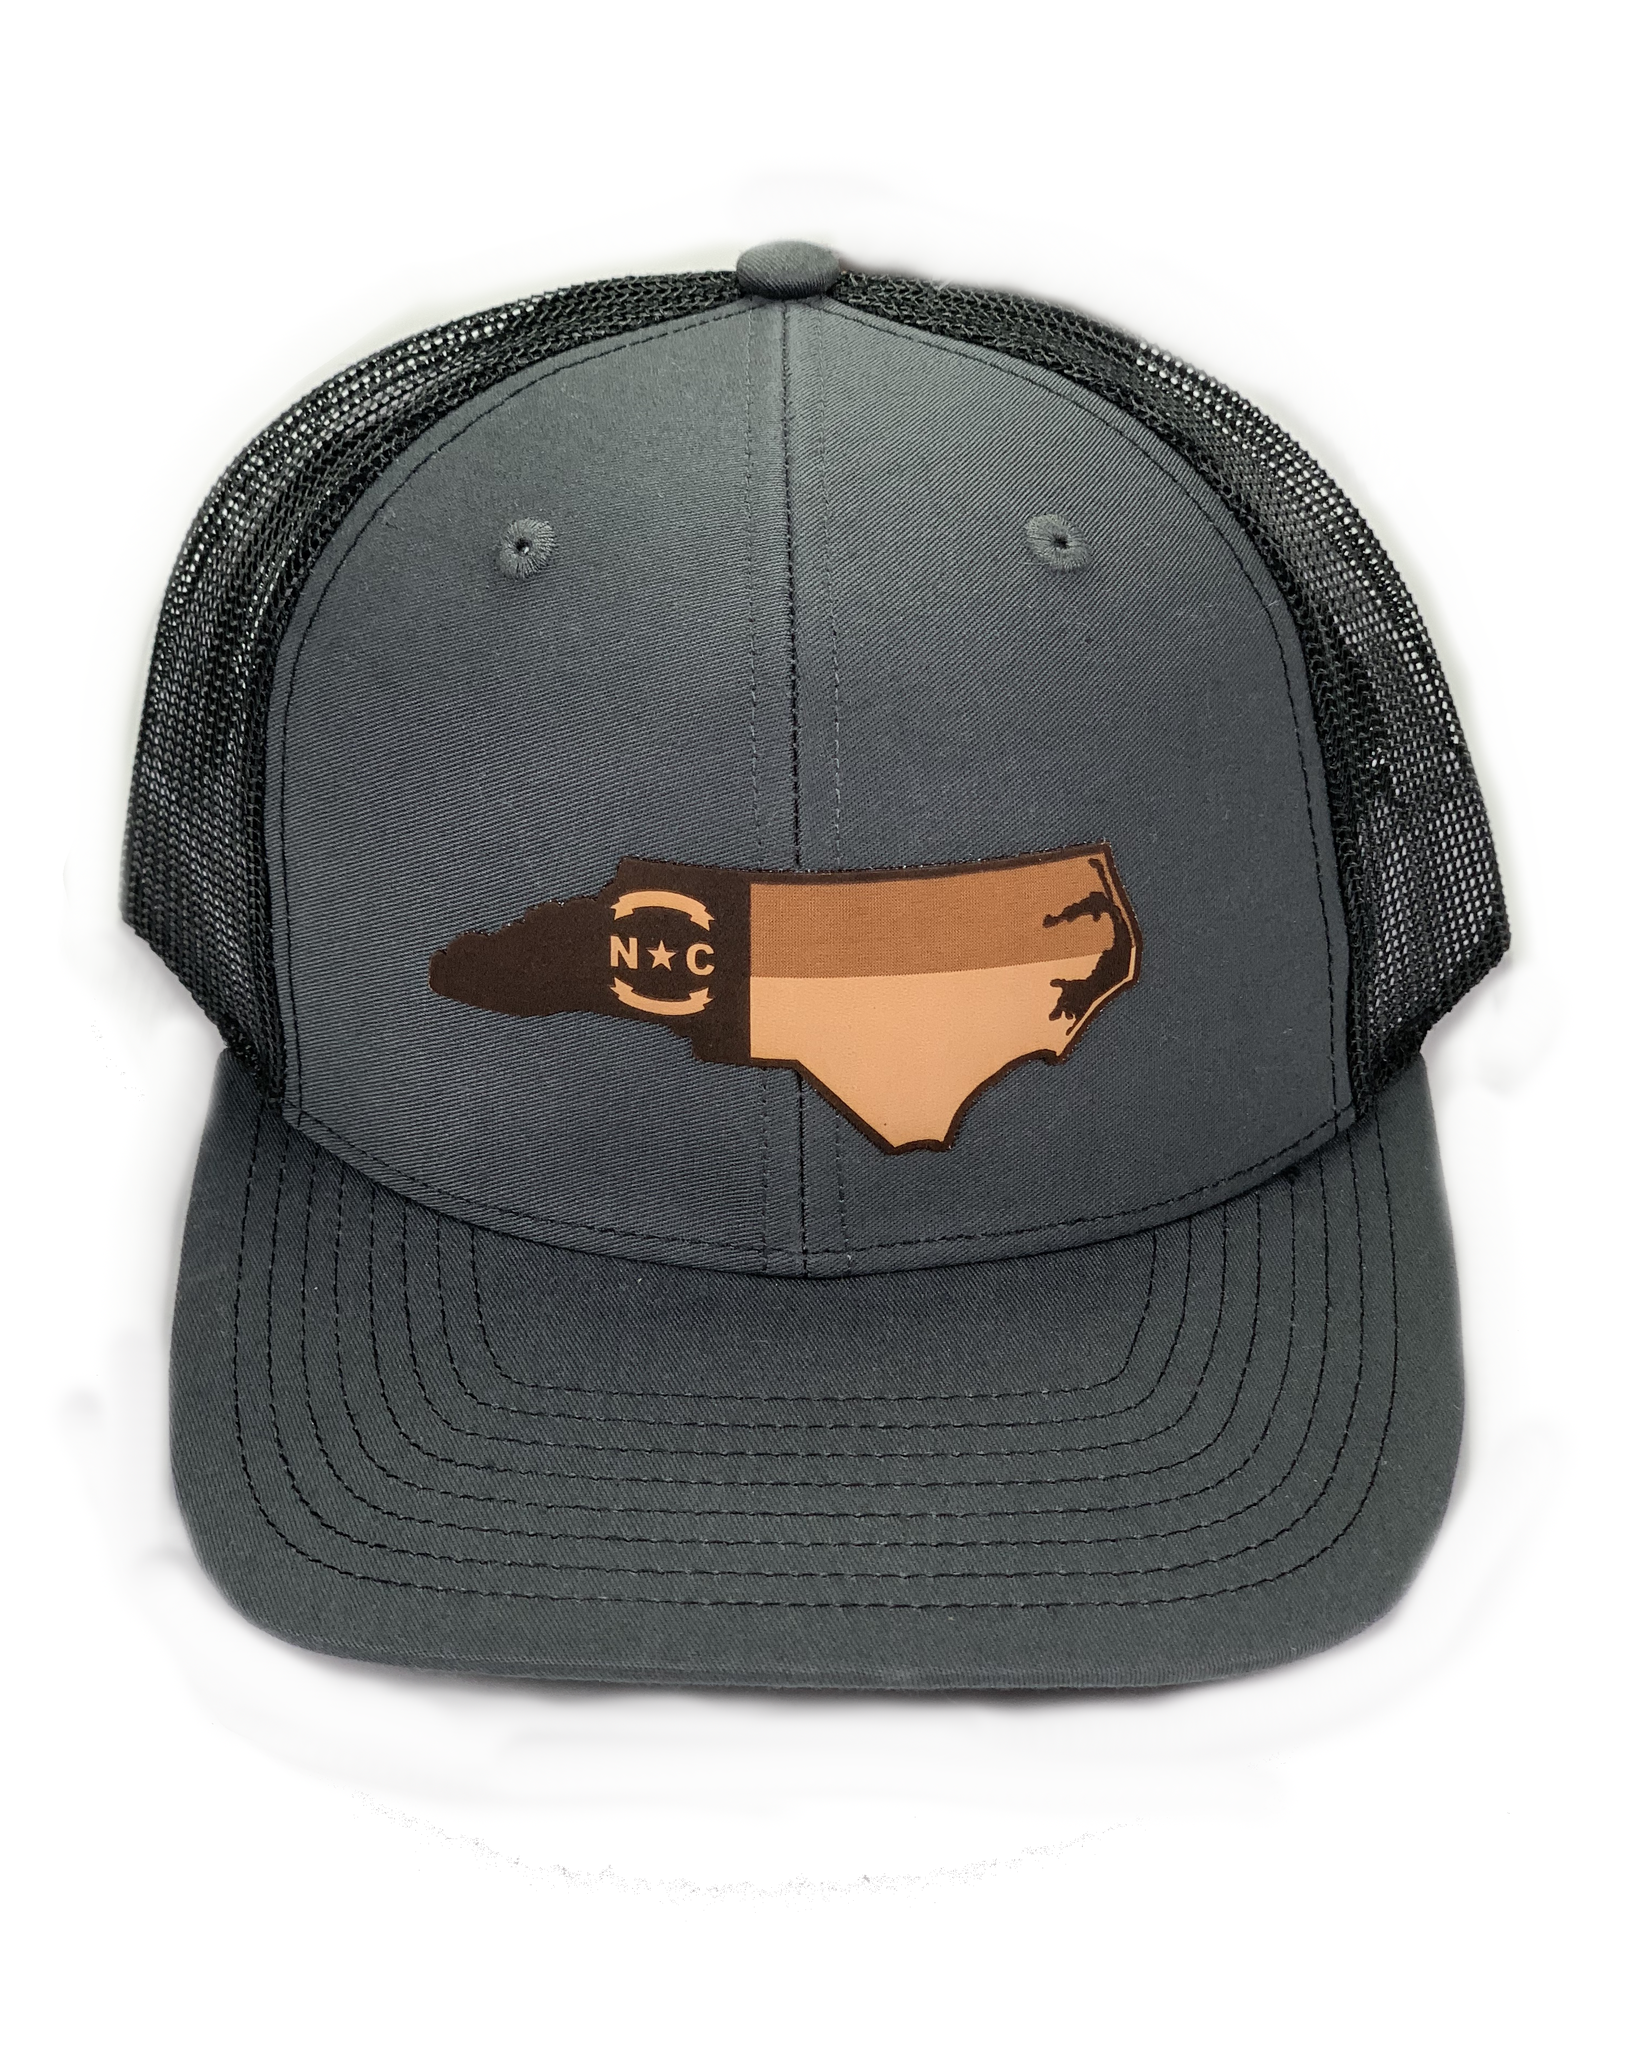 Ale Whales/Lost Wondo Charcoal/Black NC Flag Richardson Hat